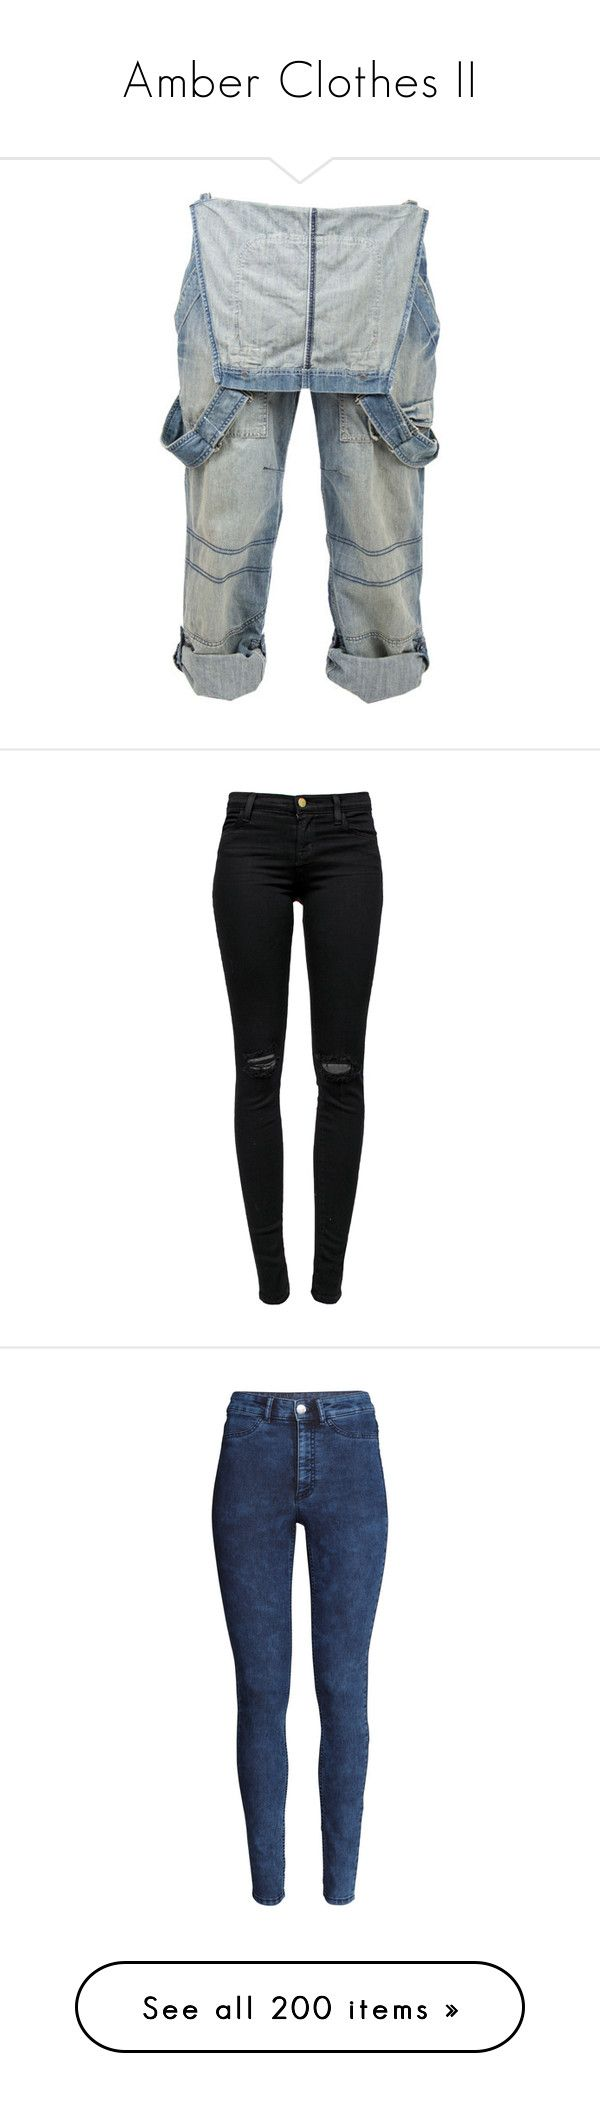 """""""Amber Clothes II"""" by arileadre ❤ liked on Polyvore featuring pants, bottoms, jeans, overalls, mens jeans, calças, j brand jeans, distressed jeans, black distressed jeans and skinny jeans"""